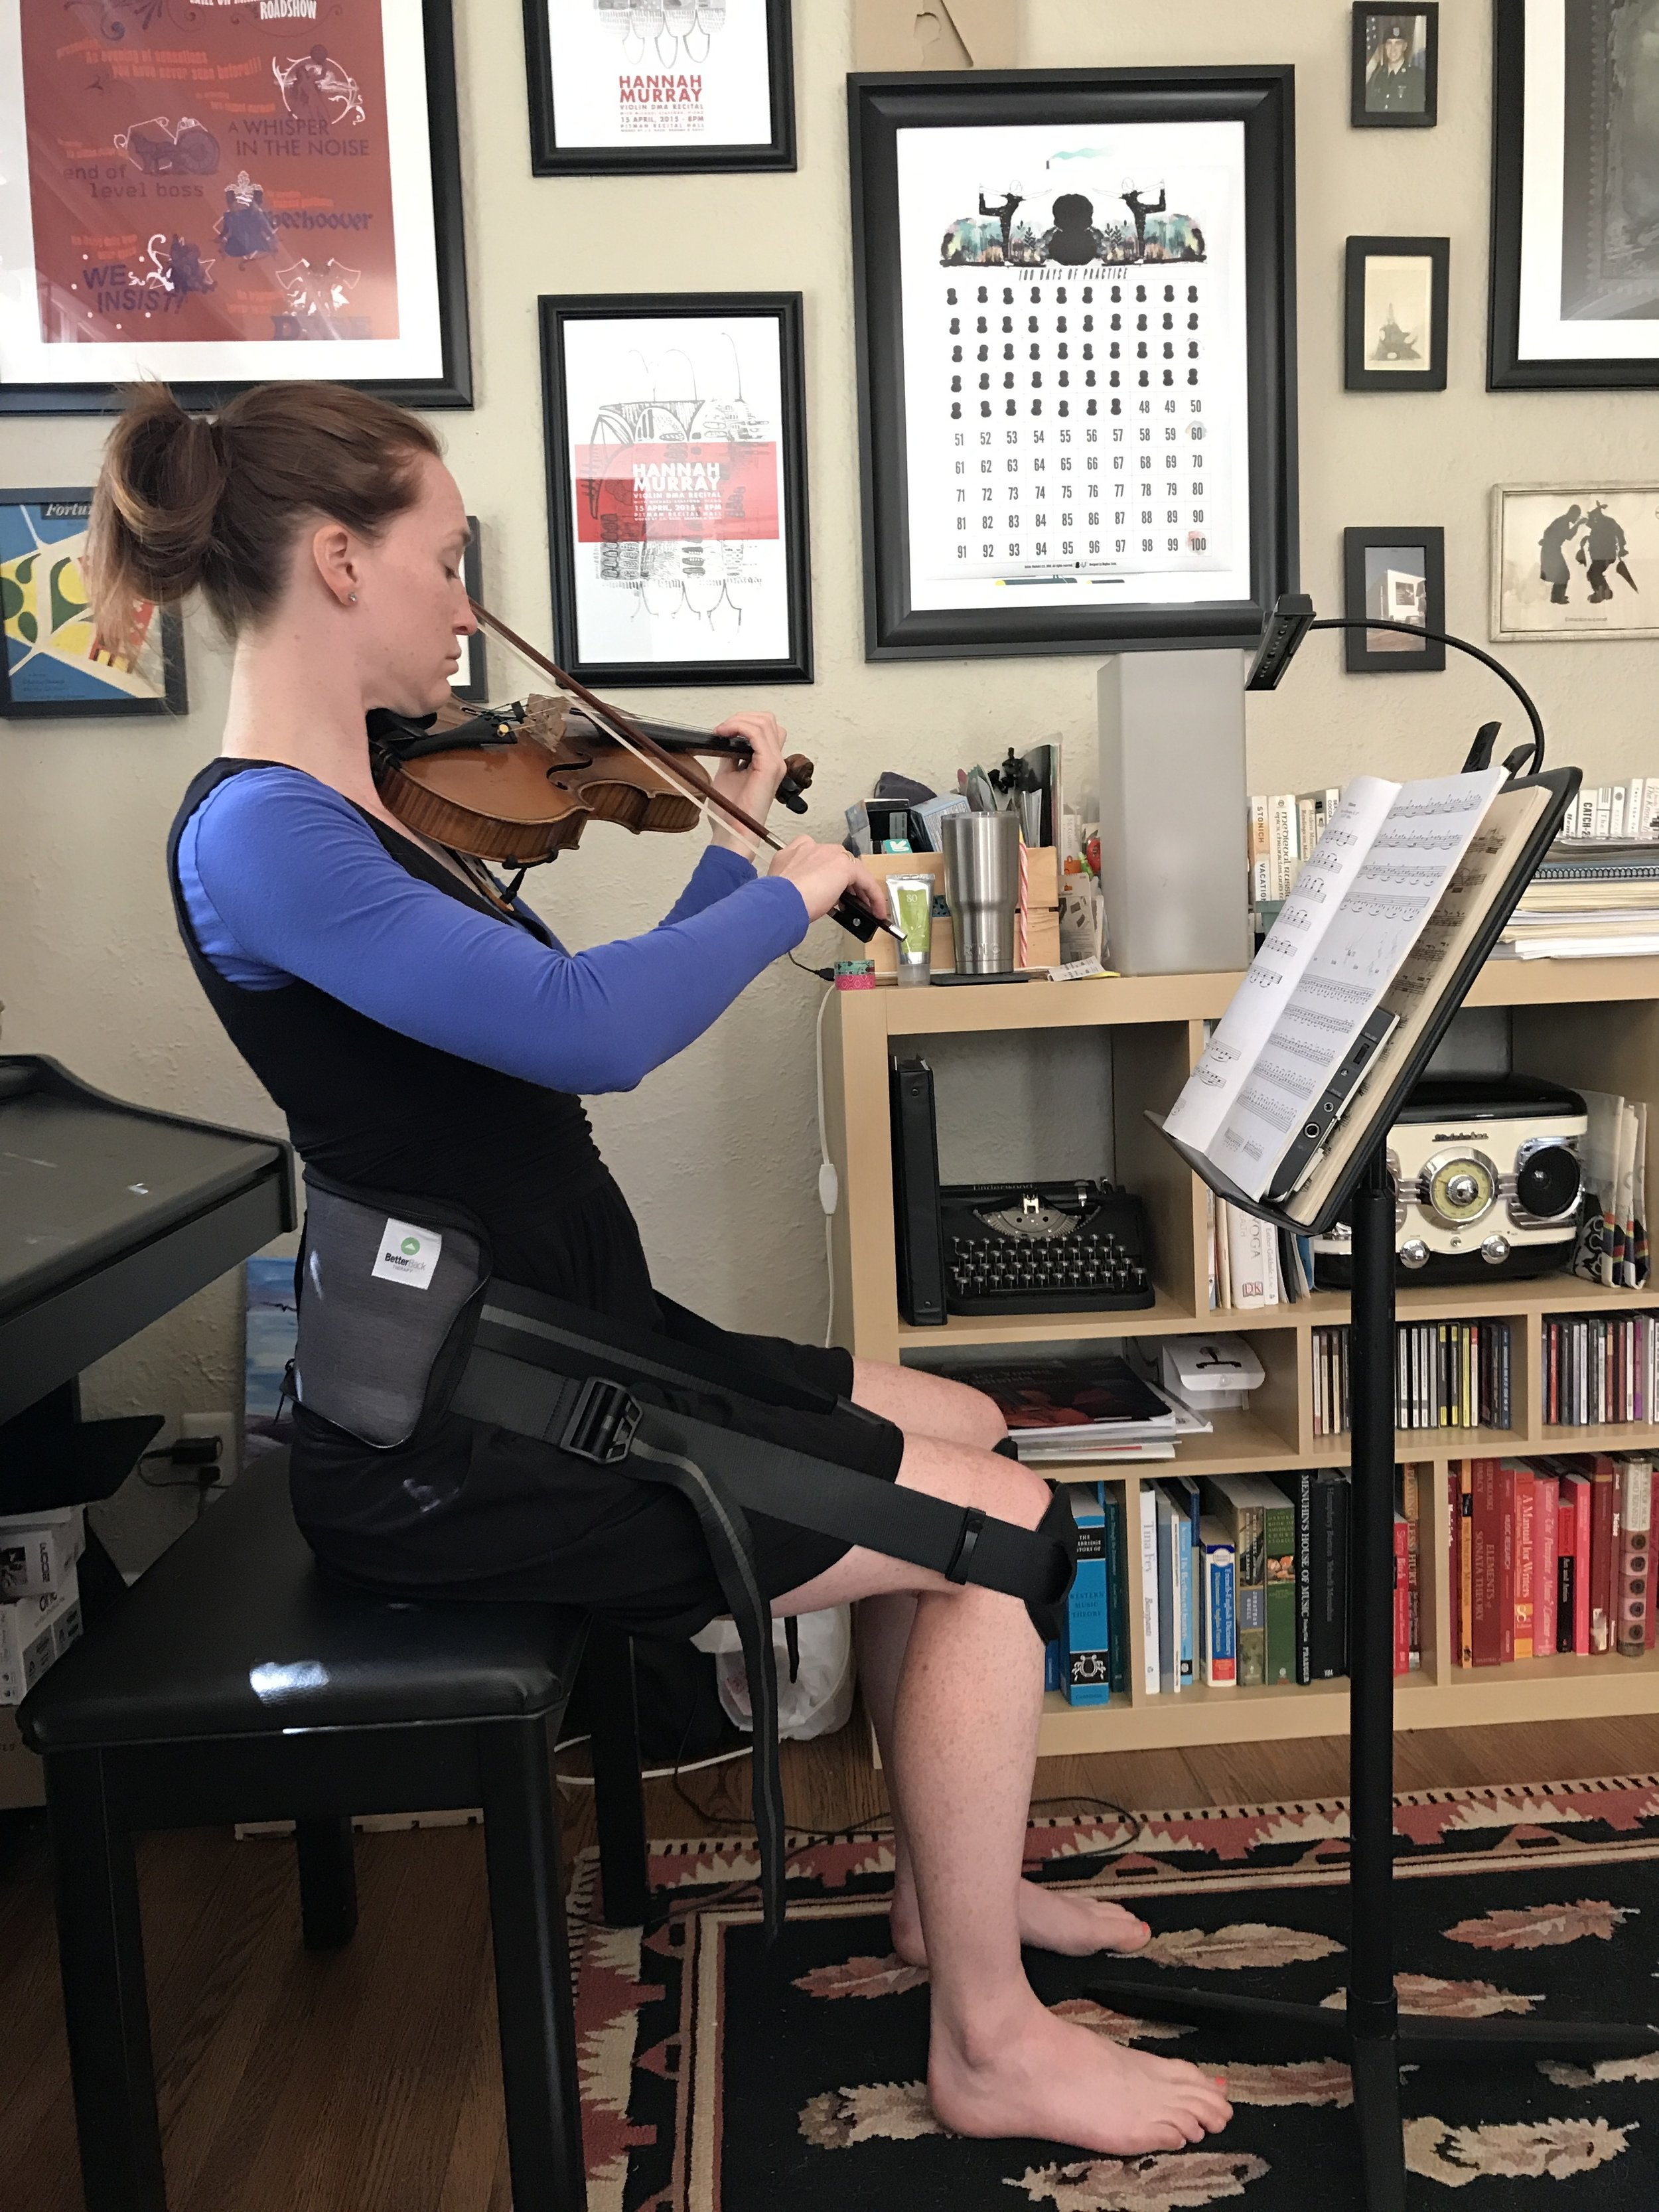 using my betterback during practice to take some of the slouching out of my posture. It definitely helps! #happypracticing